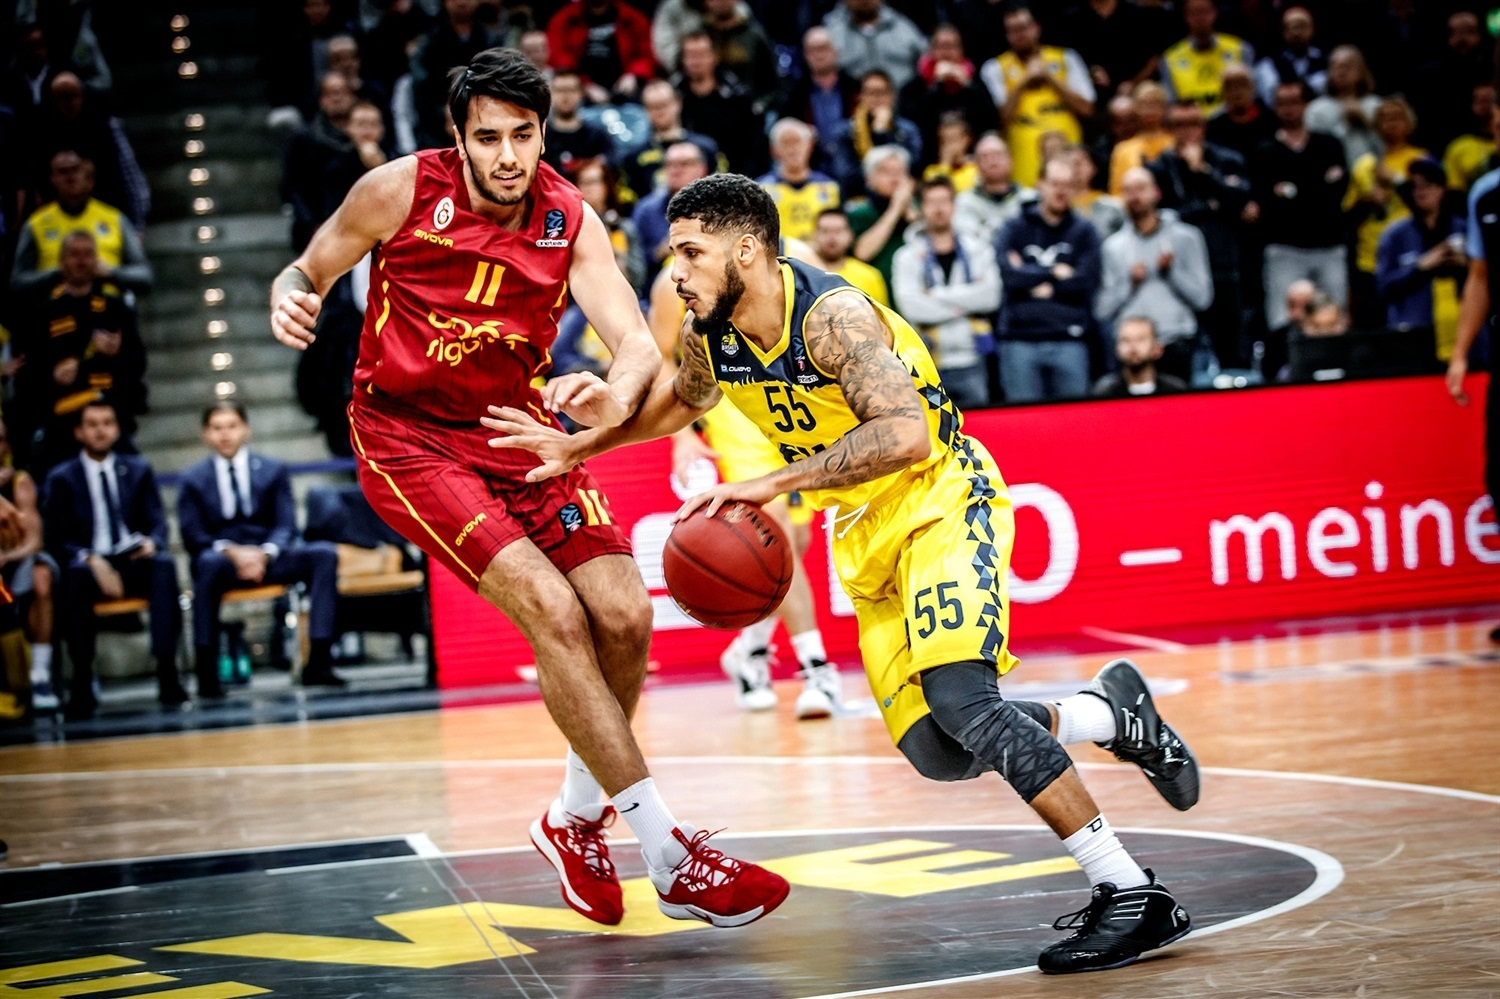 Tyler Larson - EWE Baskets Oldenburg (photo Ulf Duda - fotoduda.de) - EC19